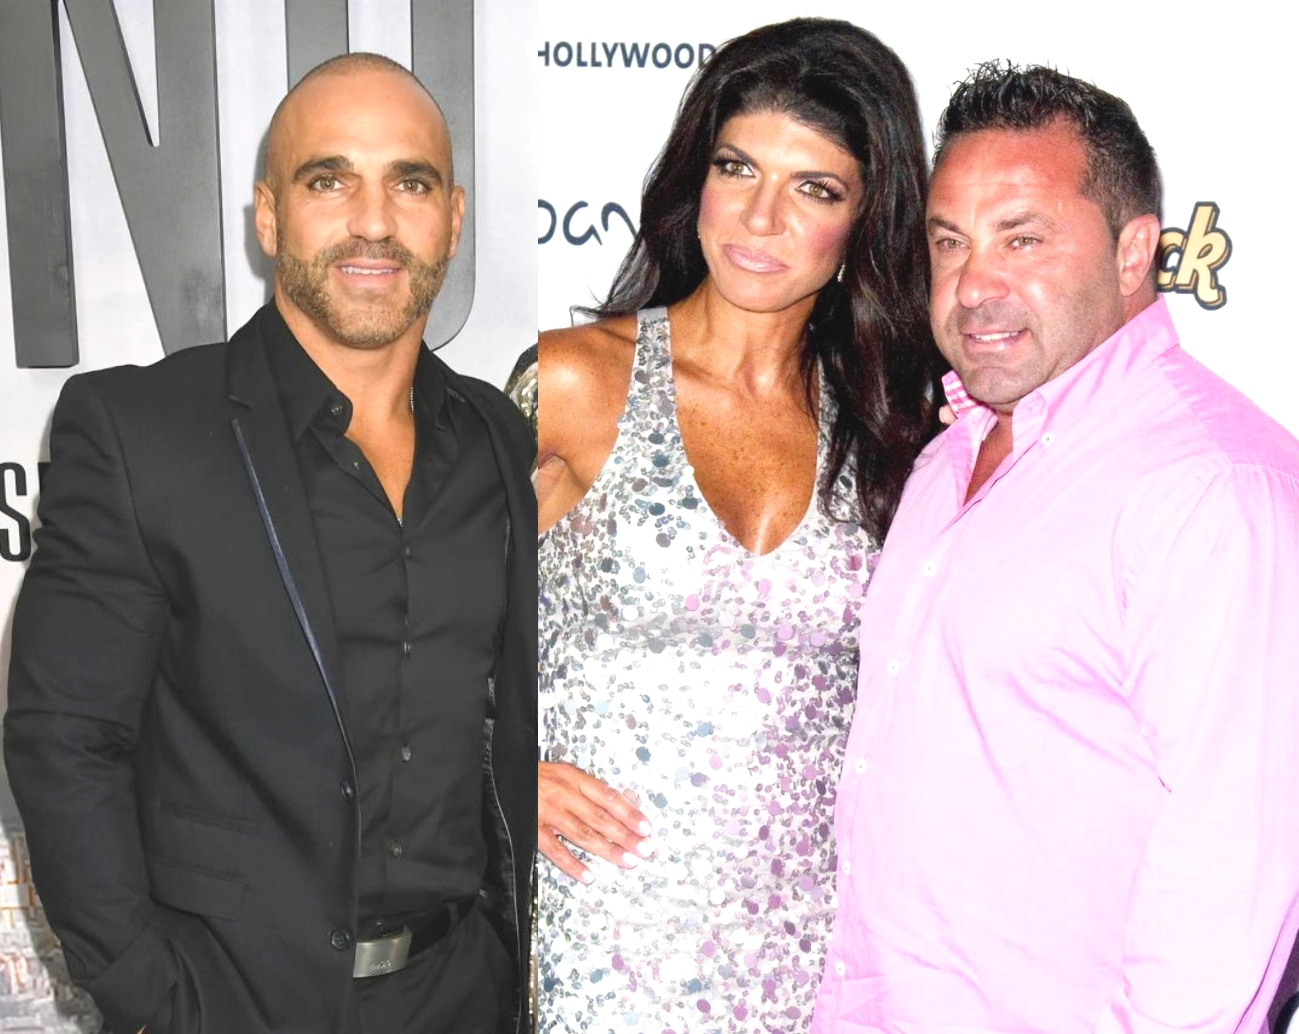 RHONJ's Joe Gorga Speaks to 'Upset' Joe Giudice After Prison Release and Gives Update